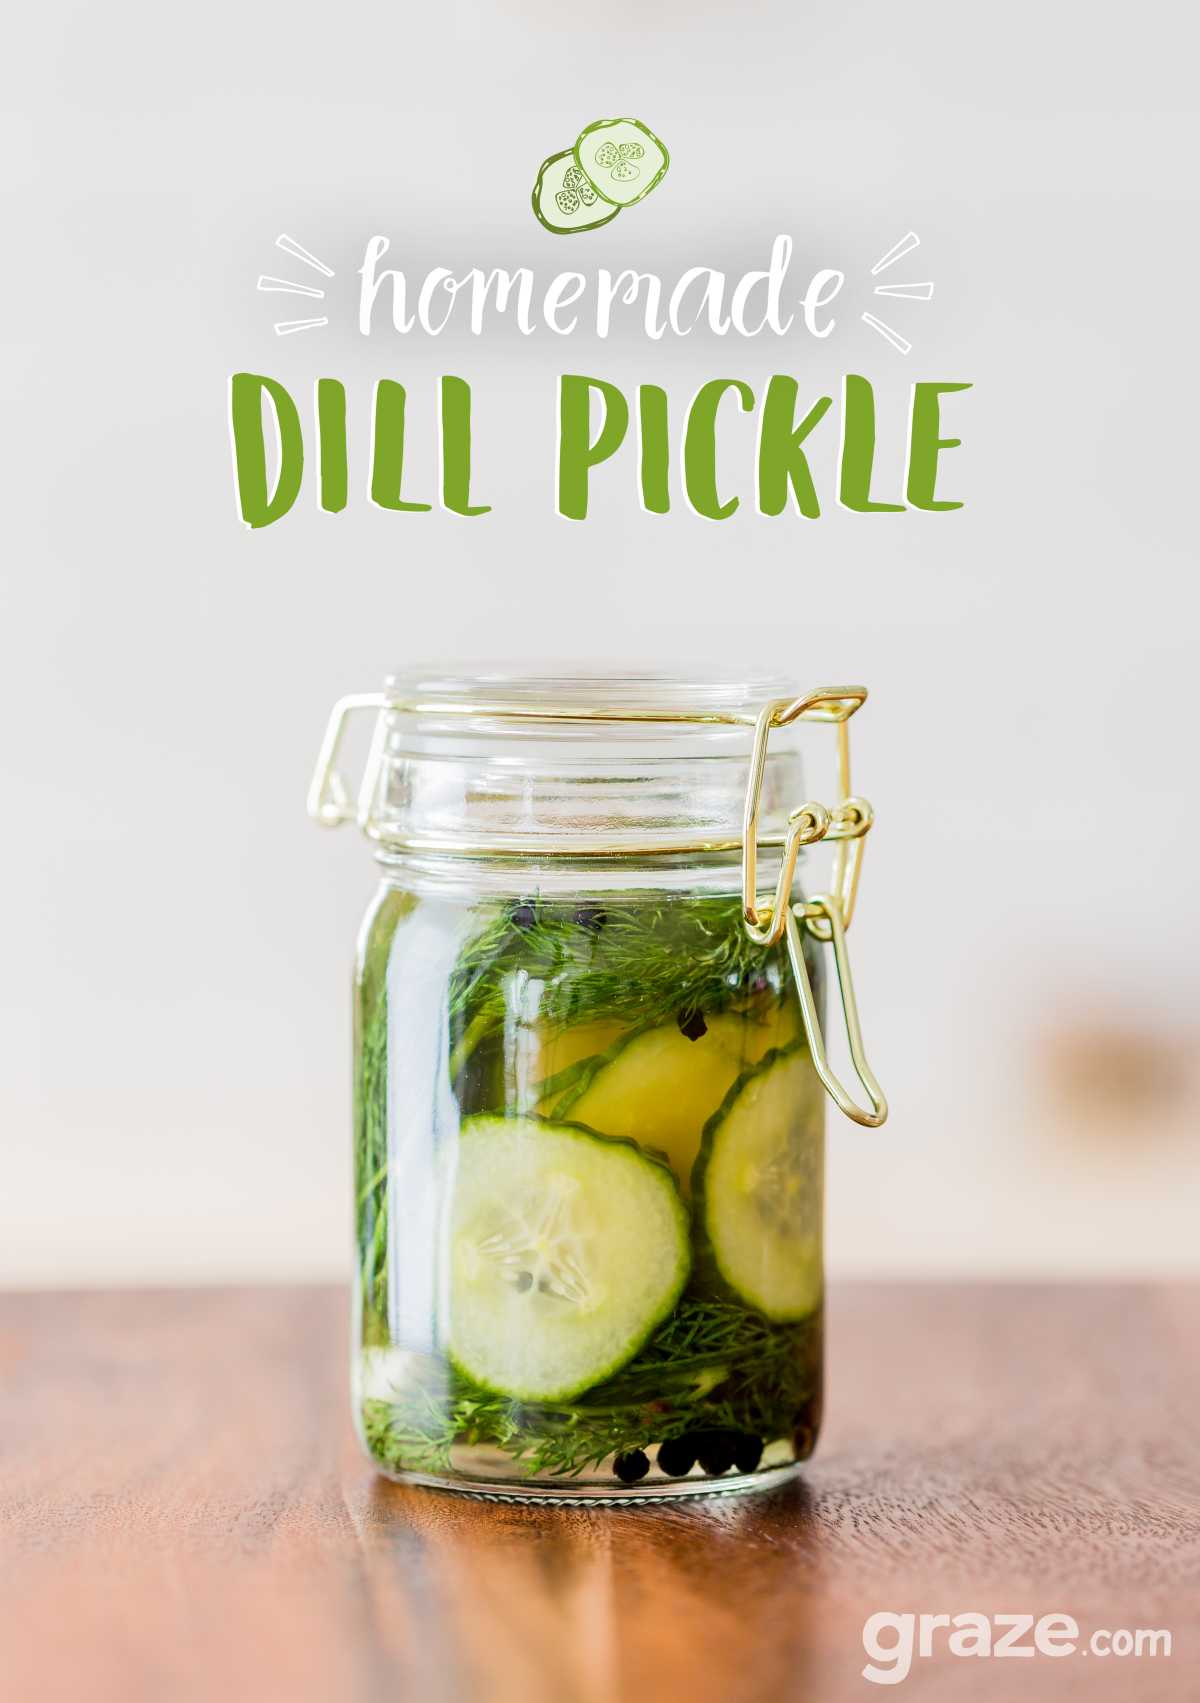 dill pickle typography